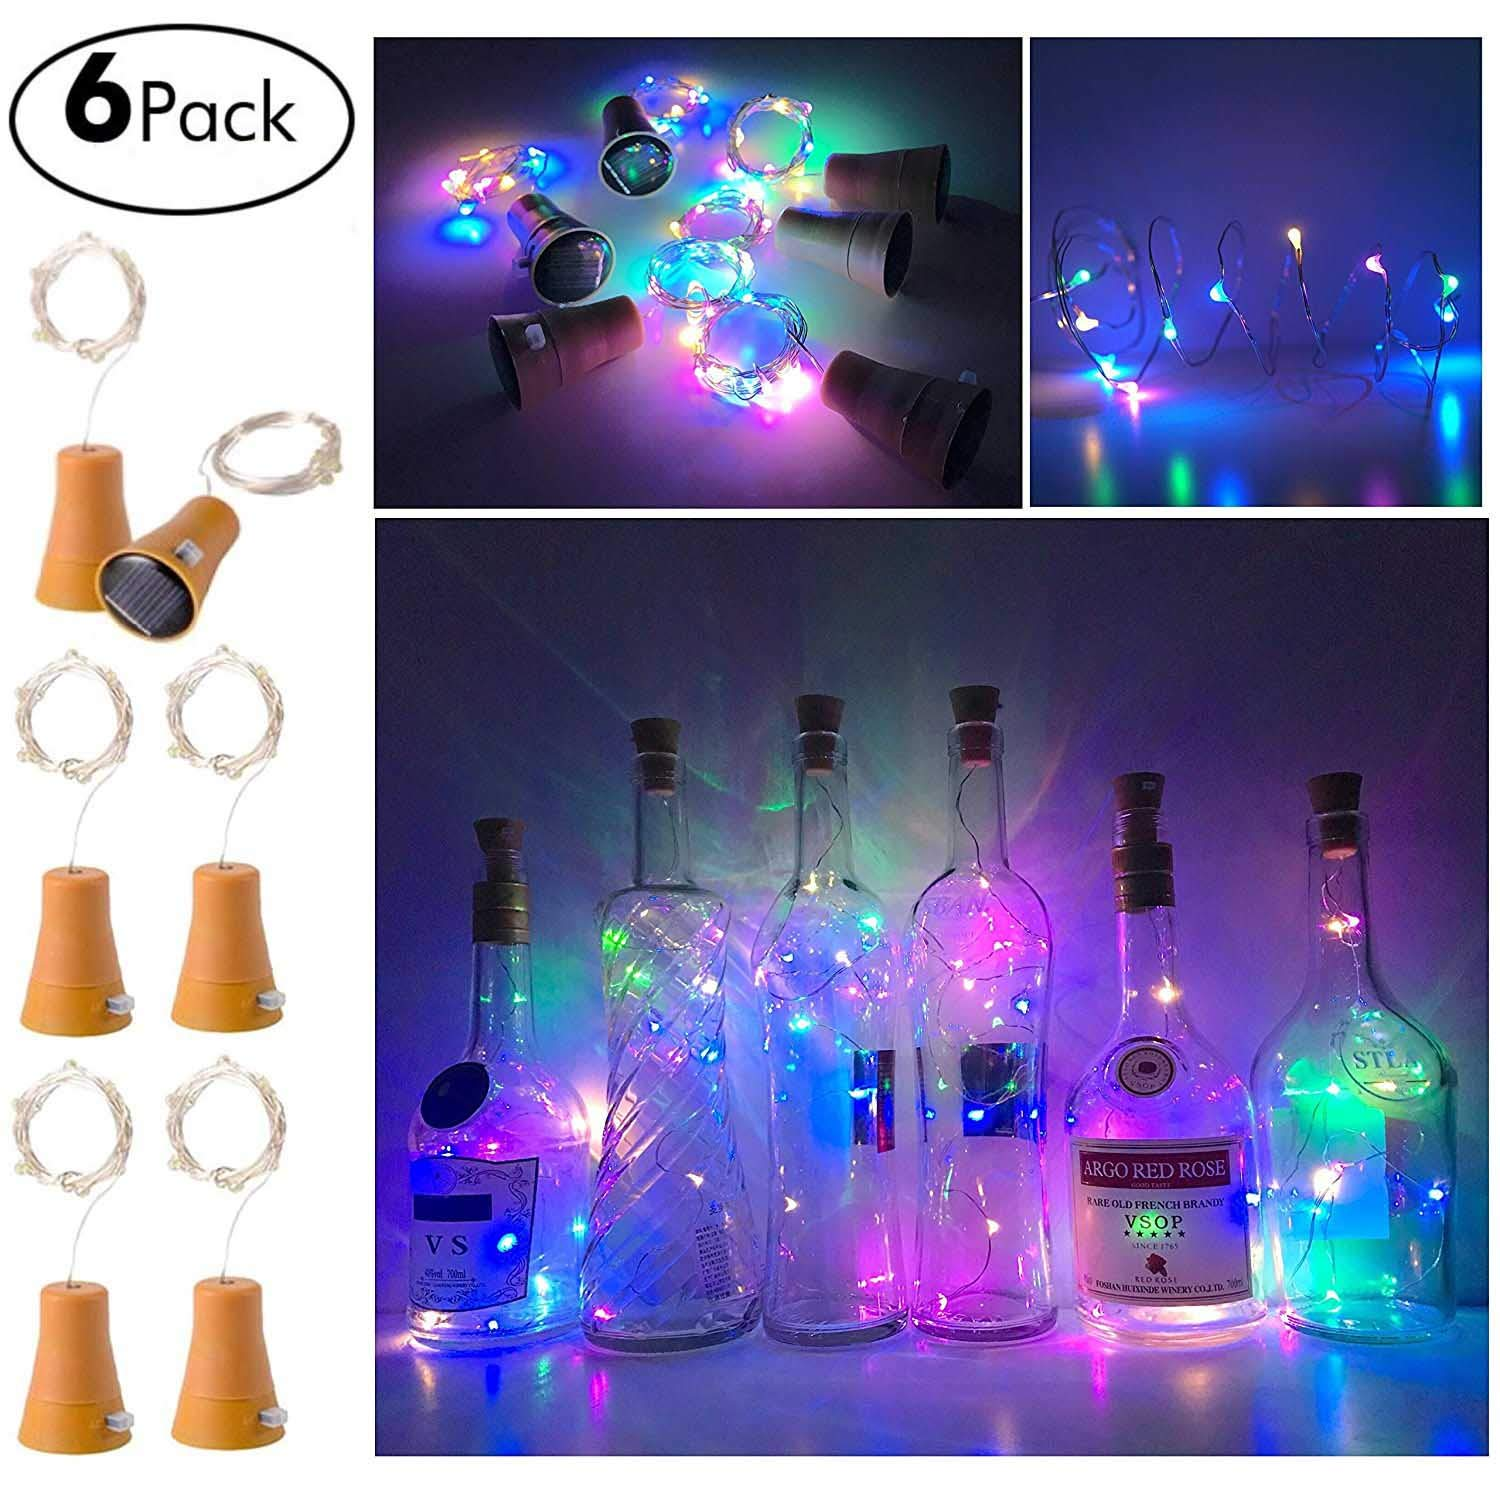 6 Pack Solar Powered Wine Bottle Lights, 10 LED Waterproof Colorful Copper Cork Shaped Lights for Wedding Christmas, Outdoor, Holiday, Garden, Patio Pathway Decor by Ninight